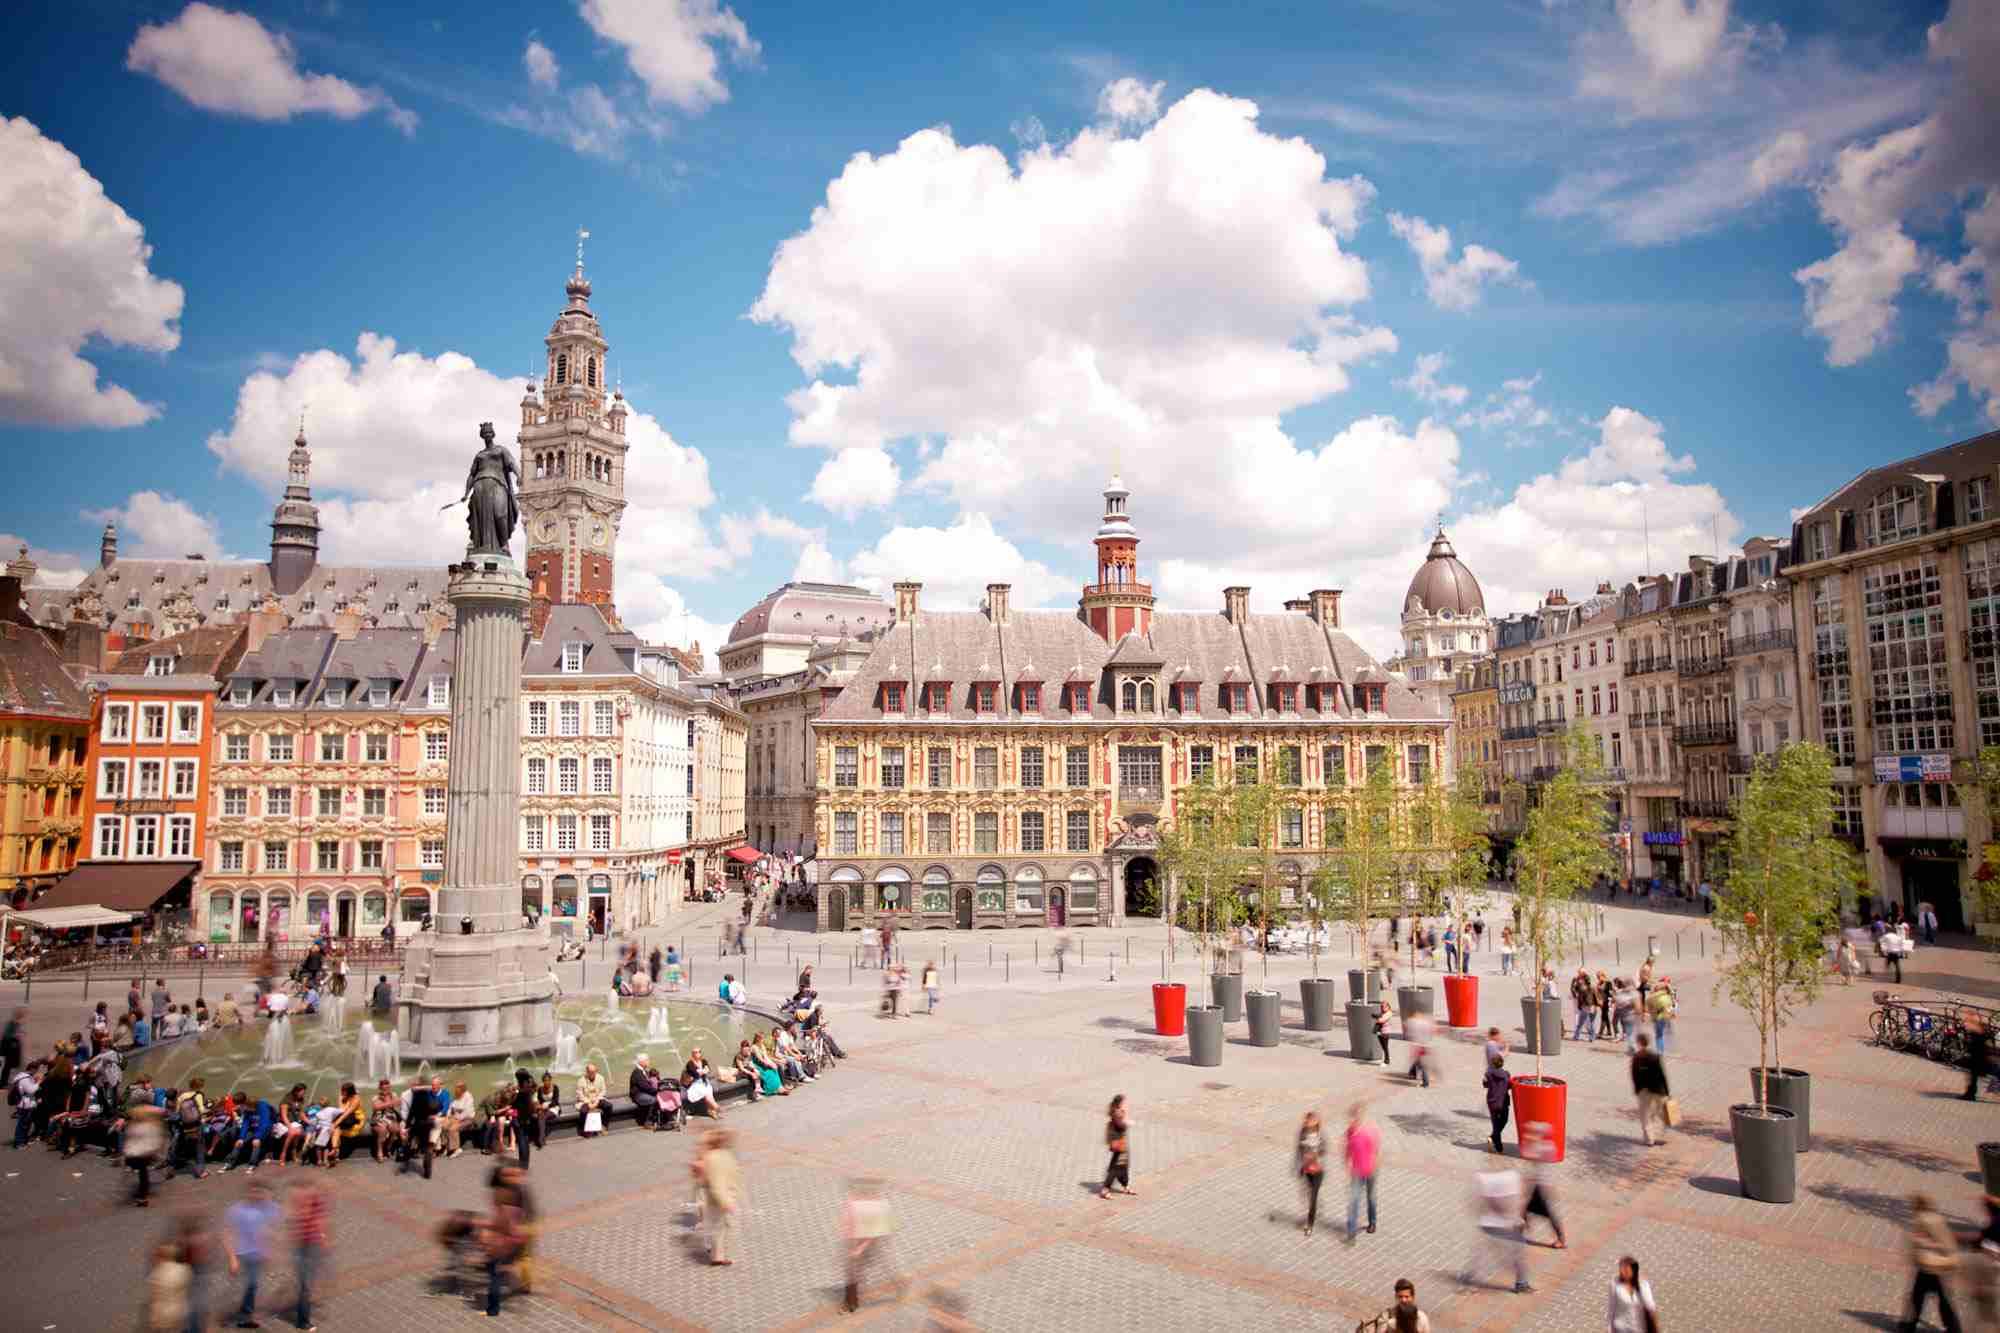 The main square in Lille, north France